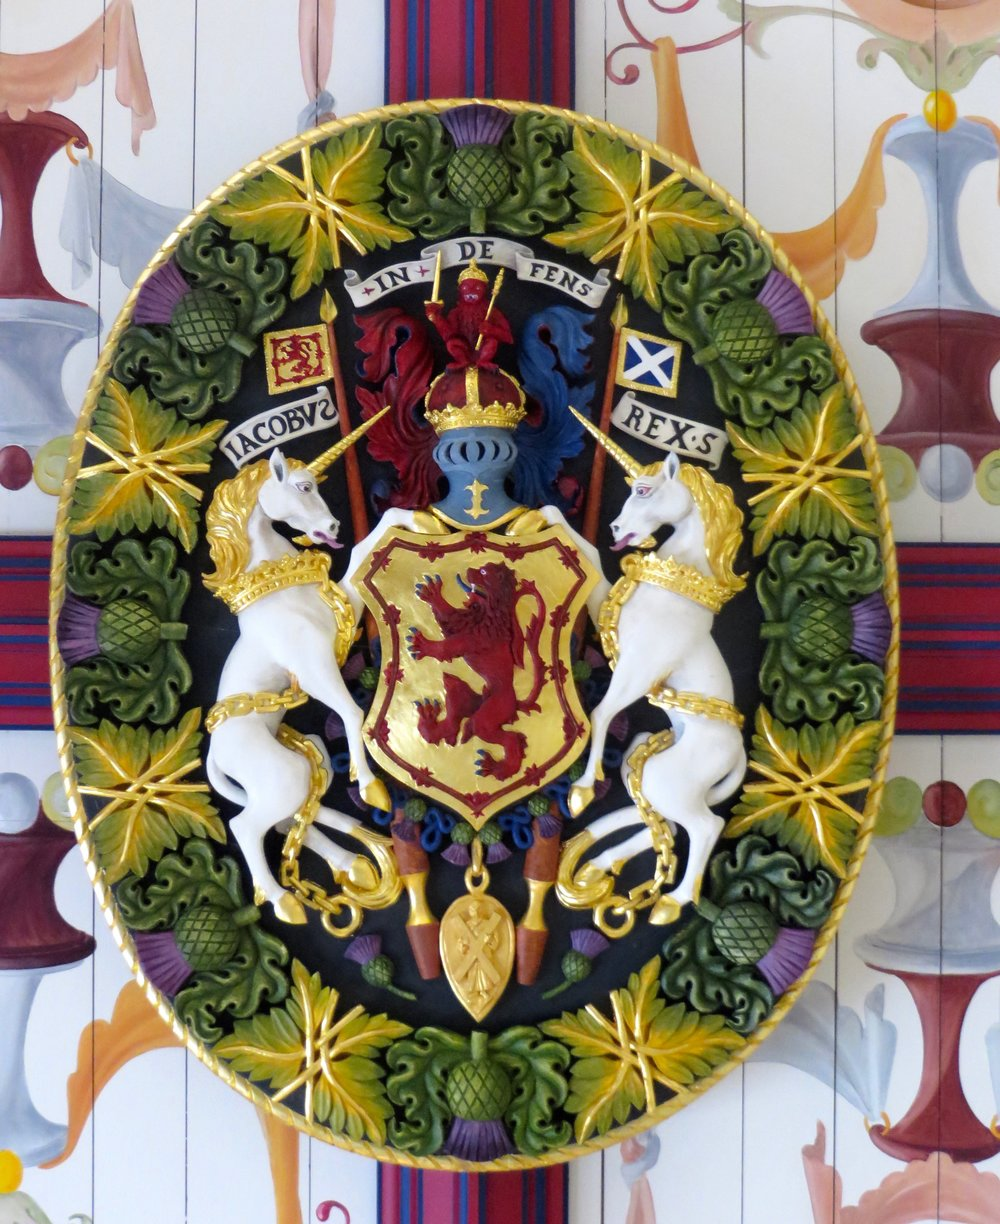 Unchained unicorns on the ceiling at Stirling Castle, Scotland